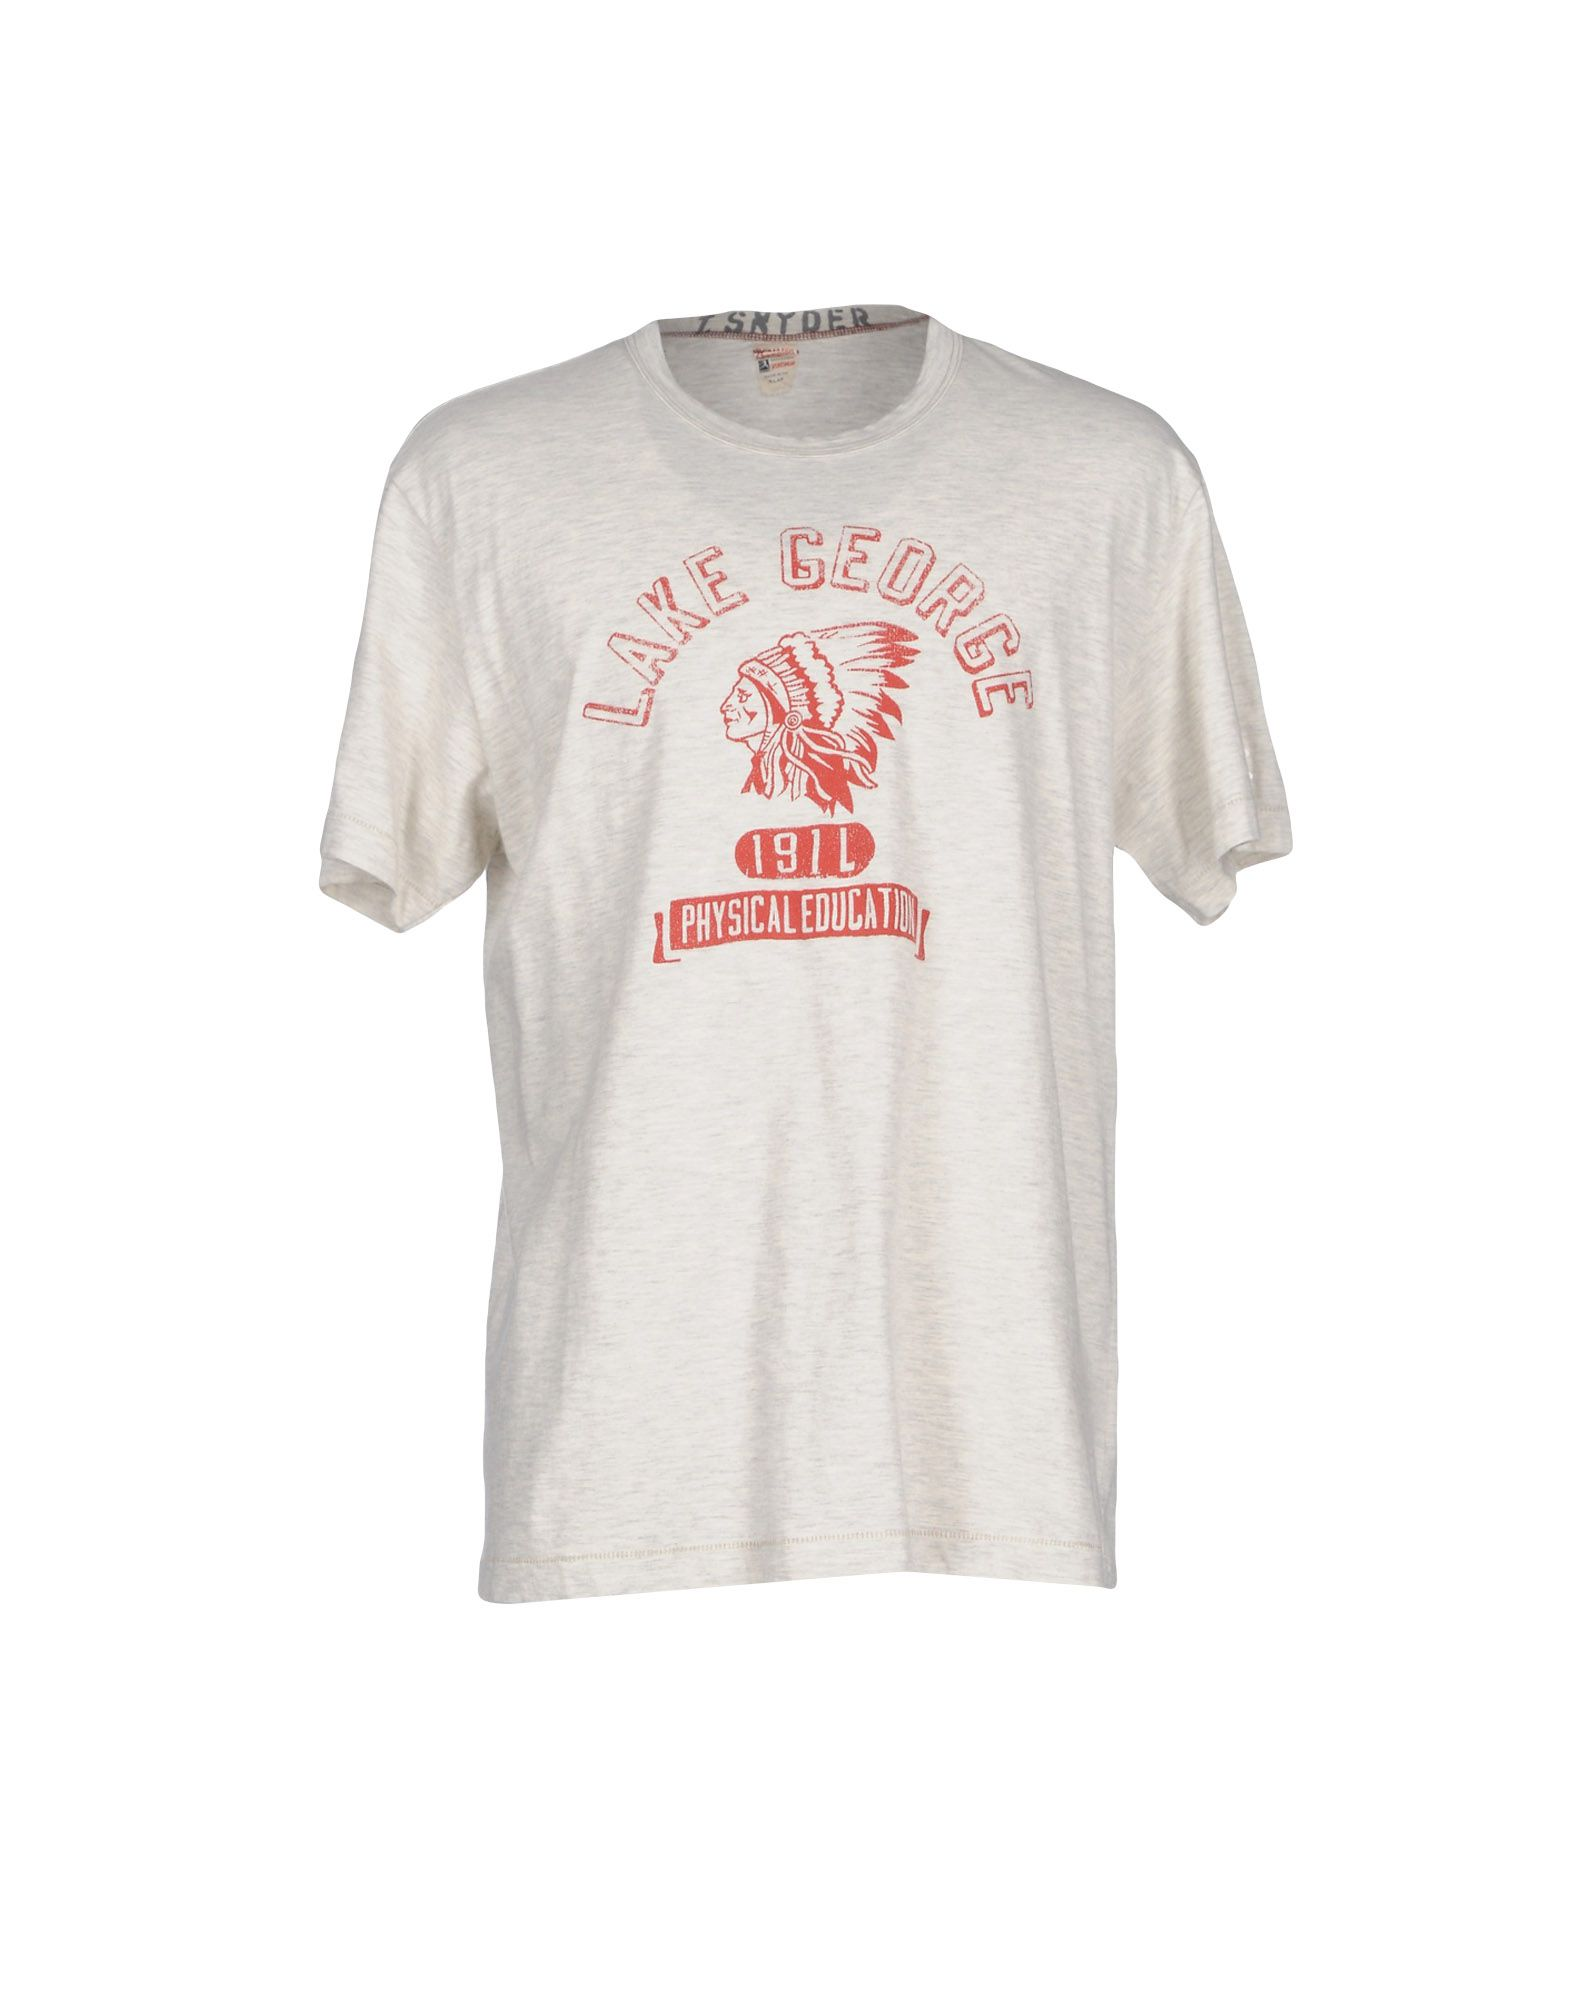 TODD SNYDER T-Shirts in Light Grey